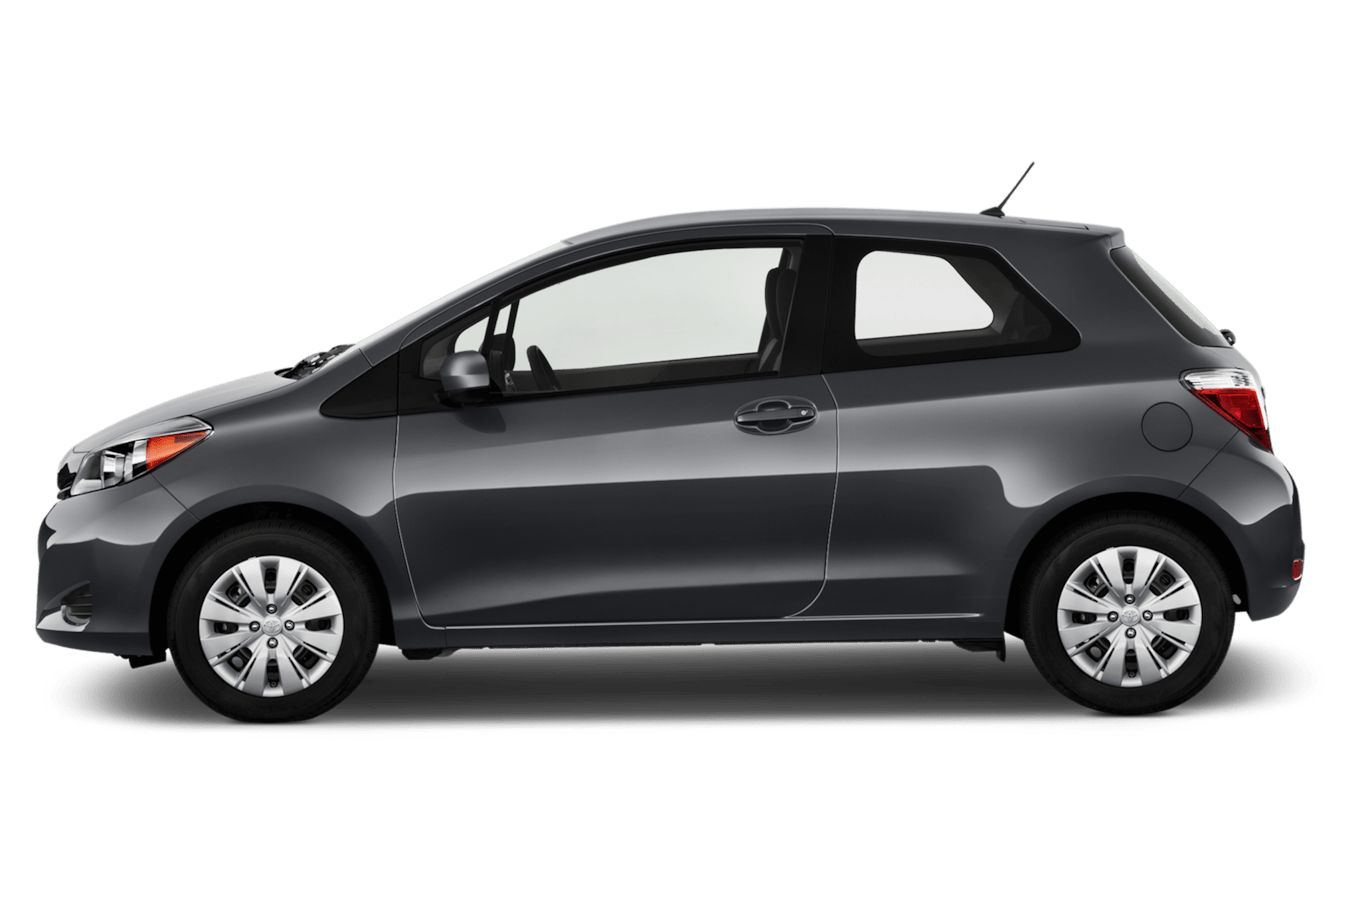 toyota yaris trd sportivo manual 2012 new agya 1.2 a/t reviews and rating motortrend